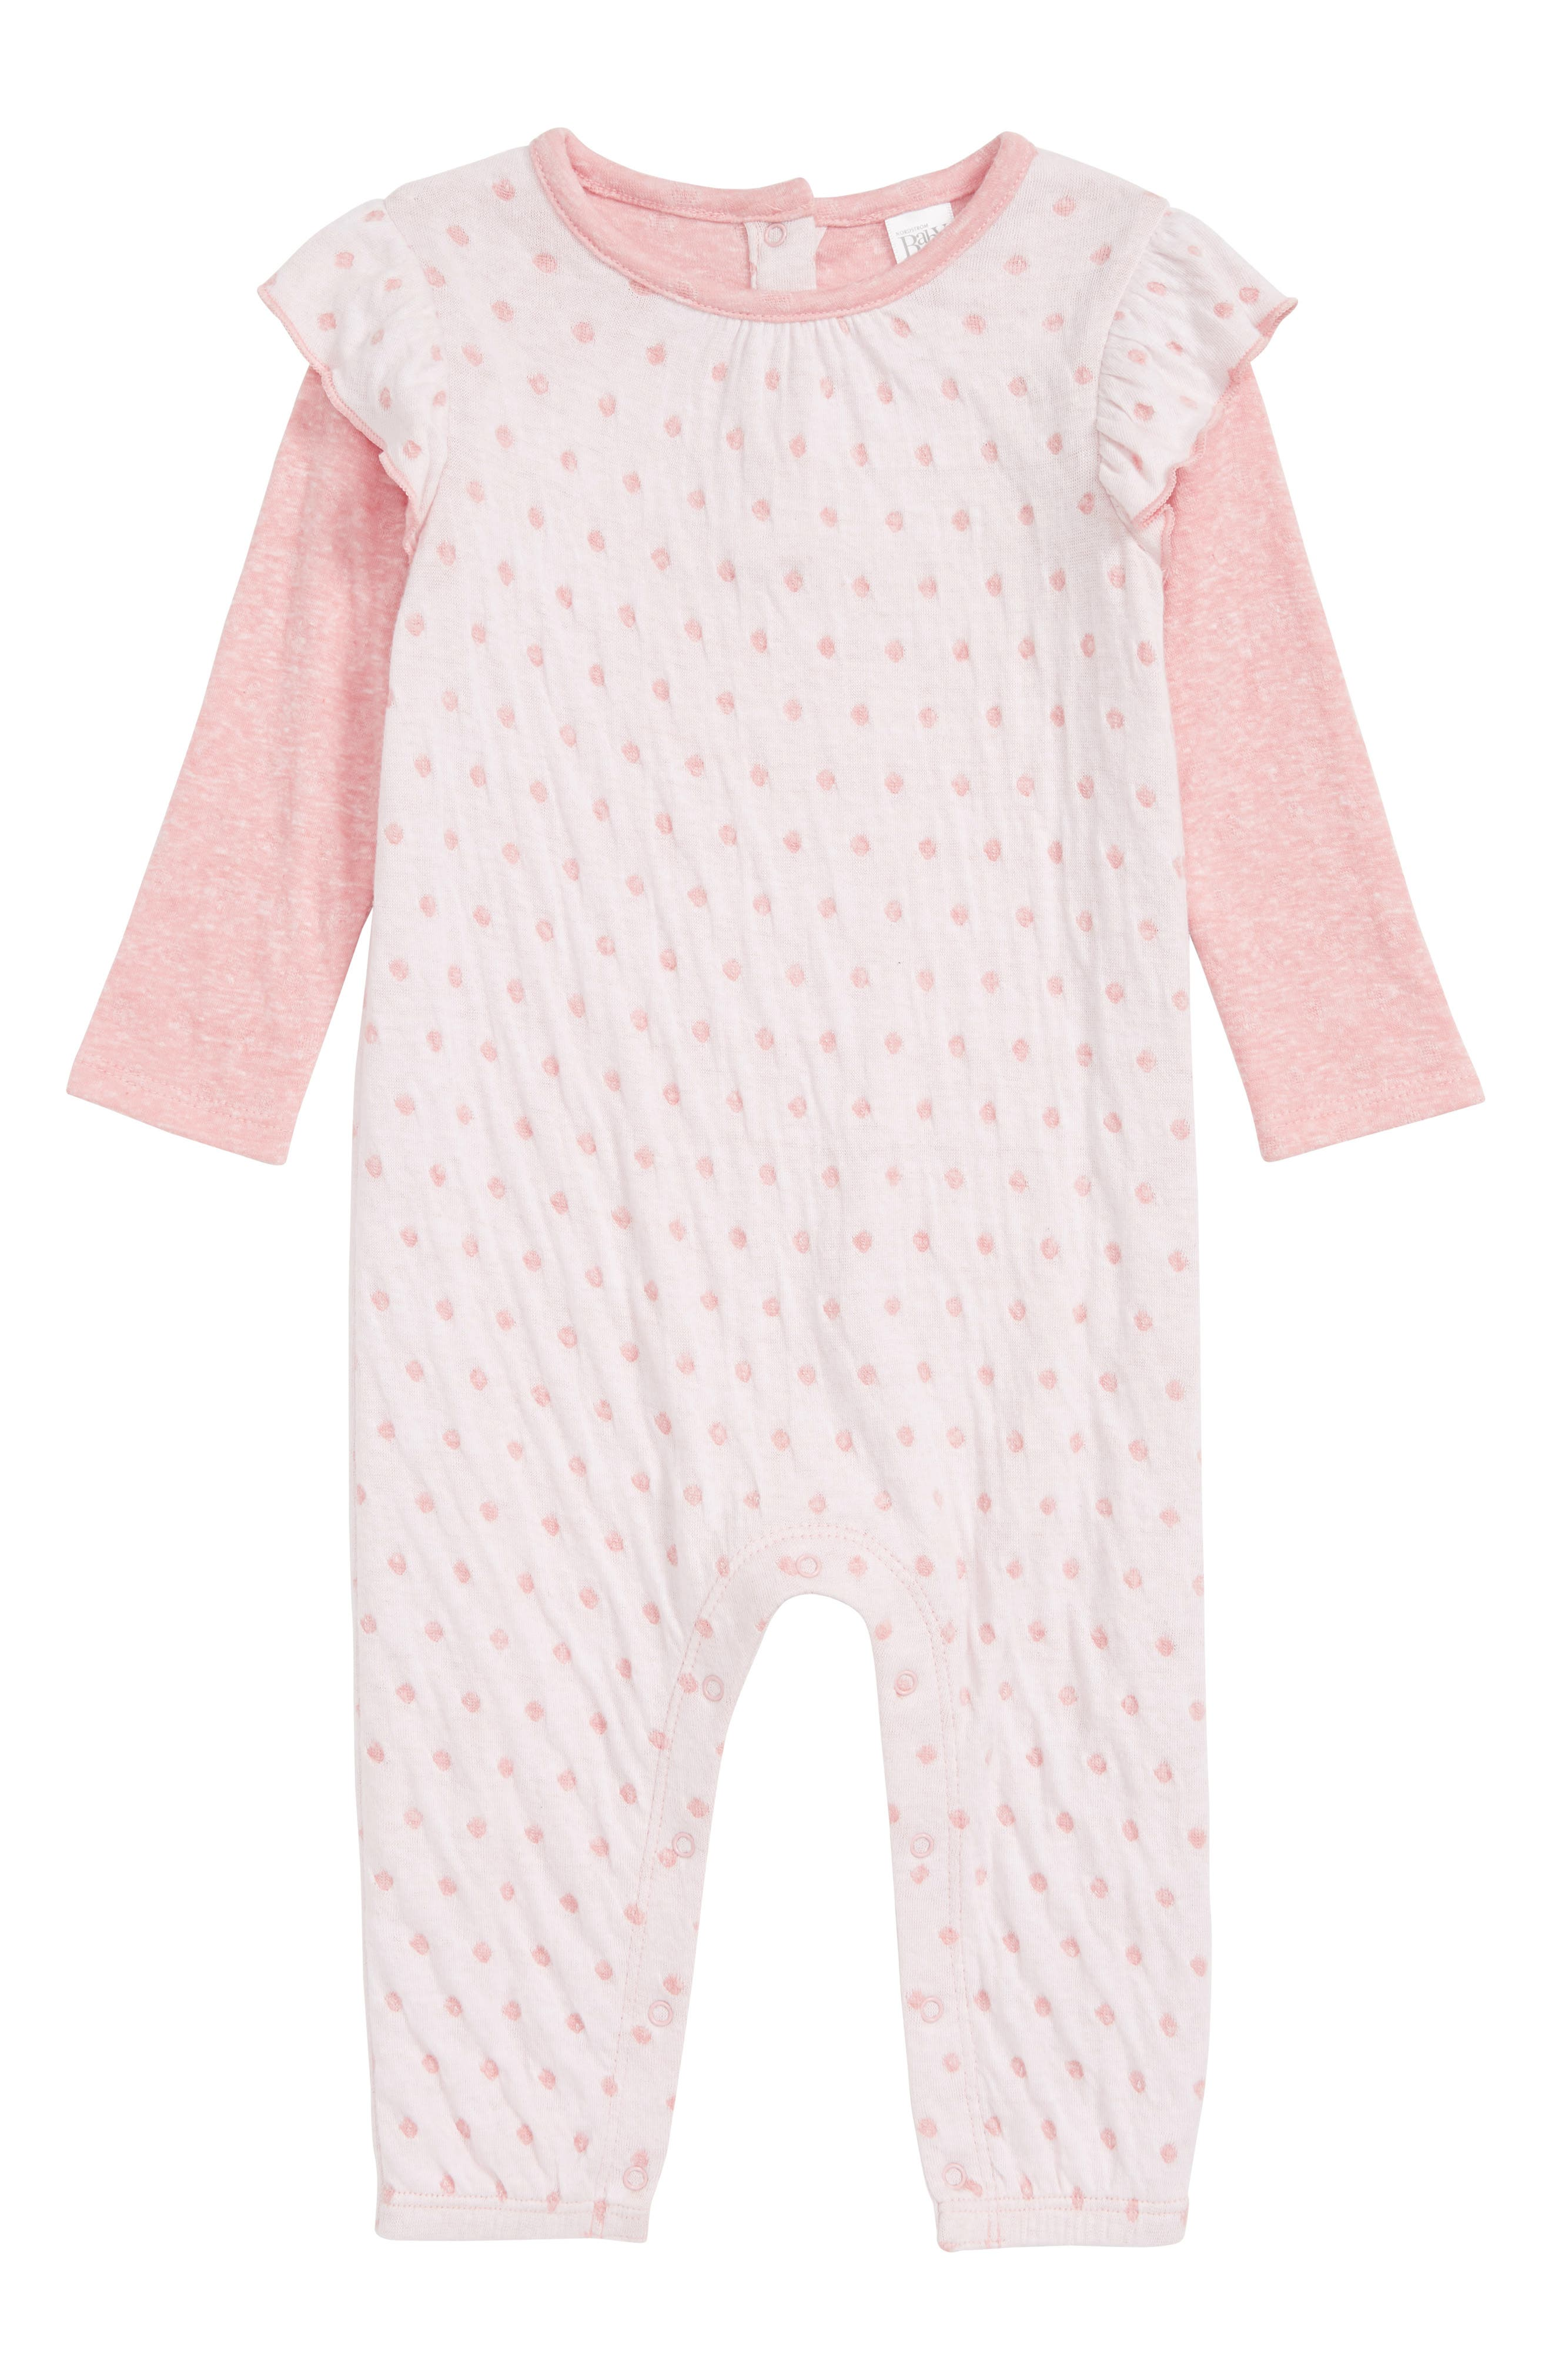 NORDSTROM BABY,                             2-Fer Coveralls,                             Main thumbnail 1, color,                             680